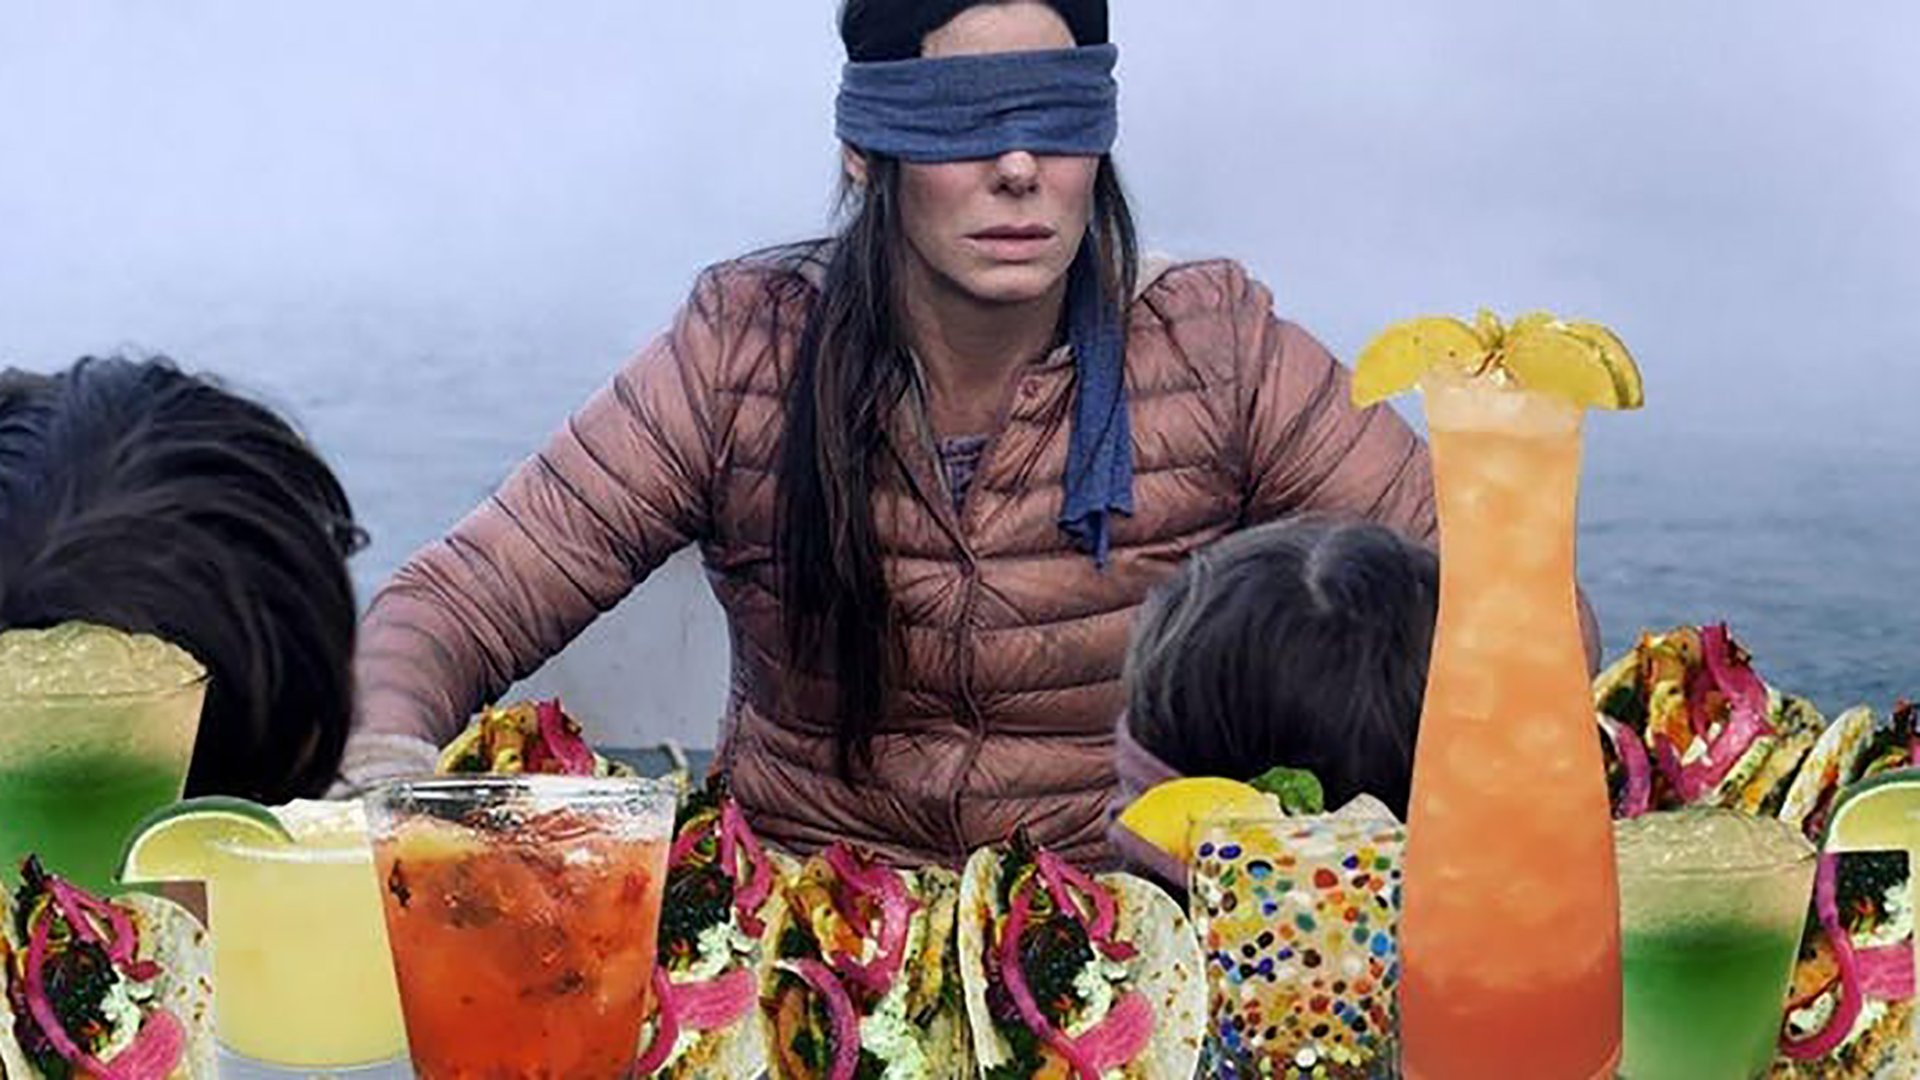 This 'Bird Box'-Themed Restaurant Is Almost Scarier Than the Movie